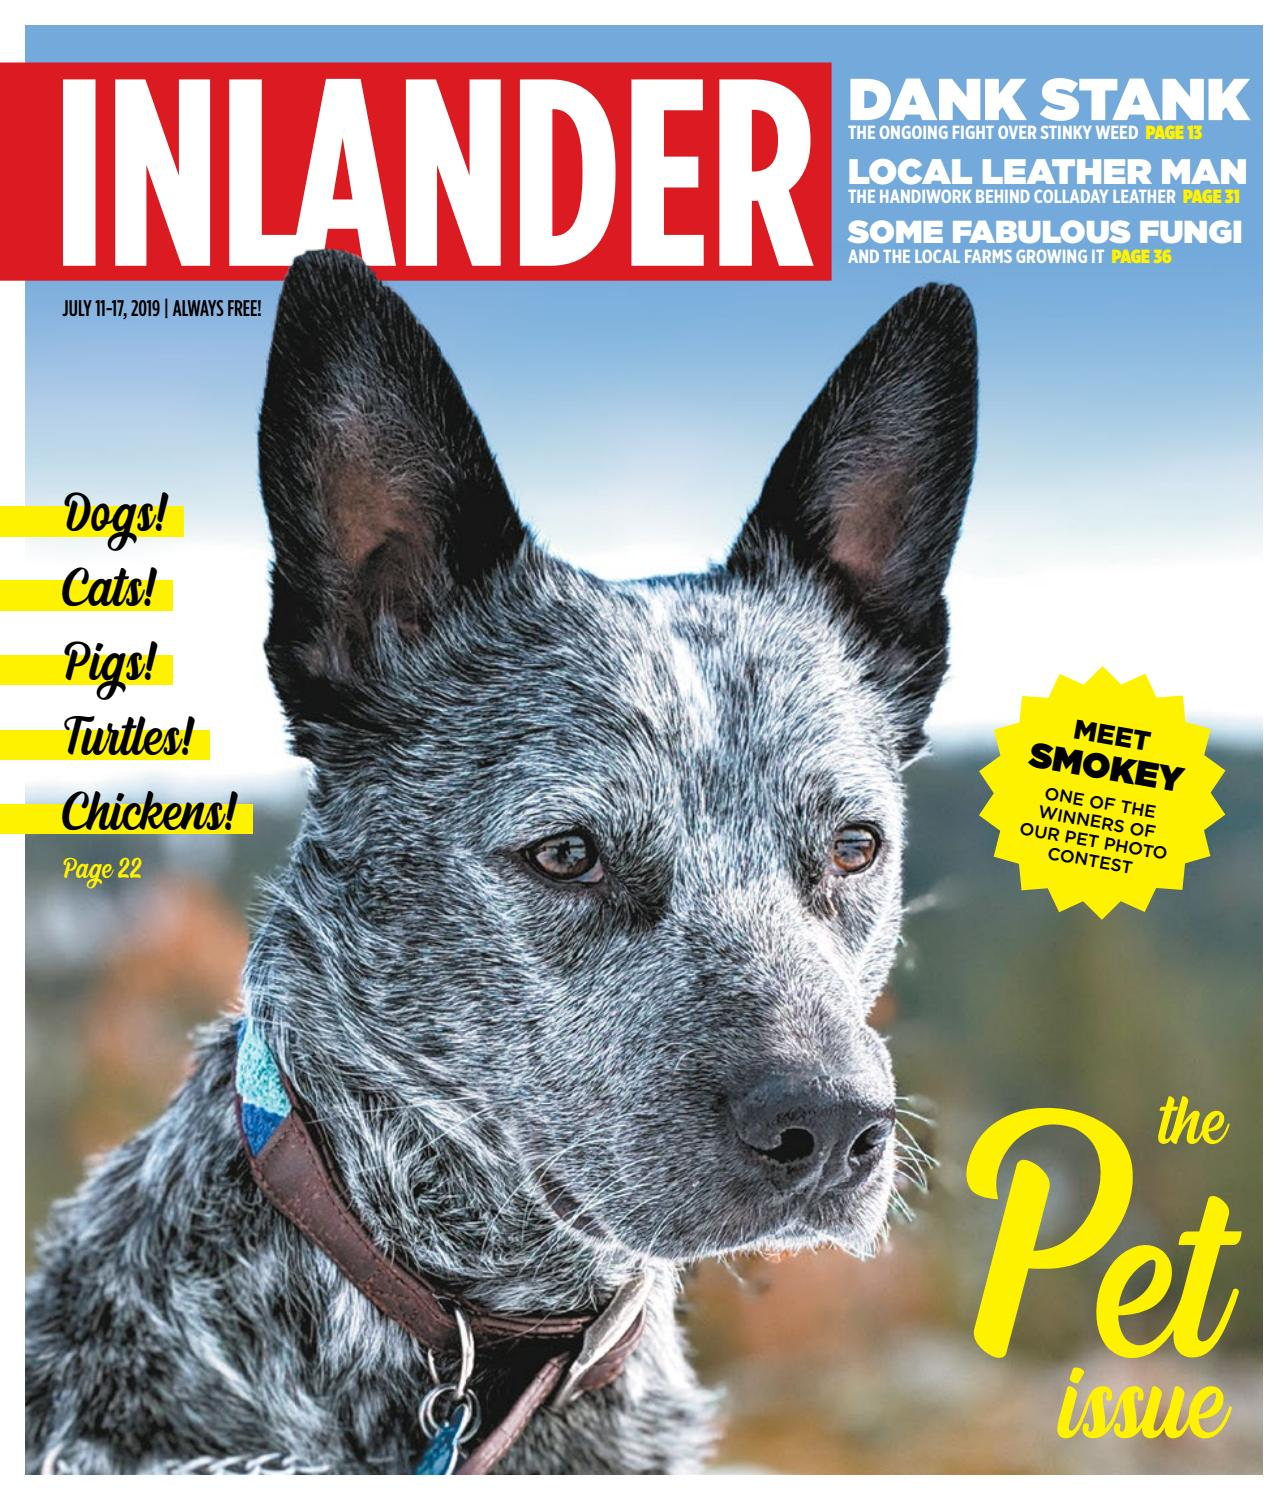 Inlander 07/11/2019 by The Inlander - issuu